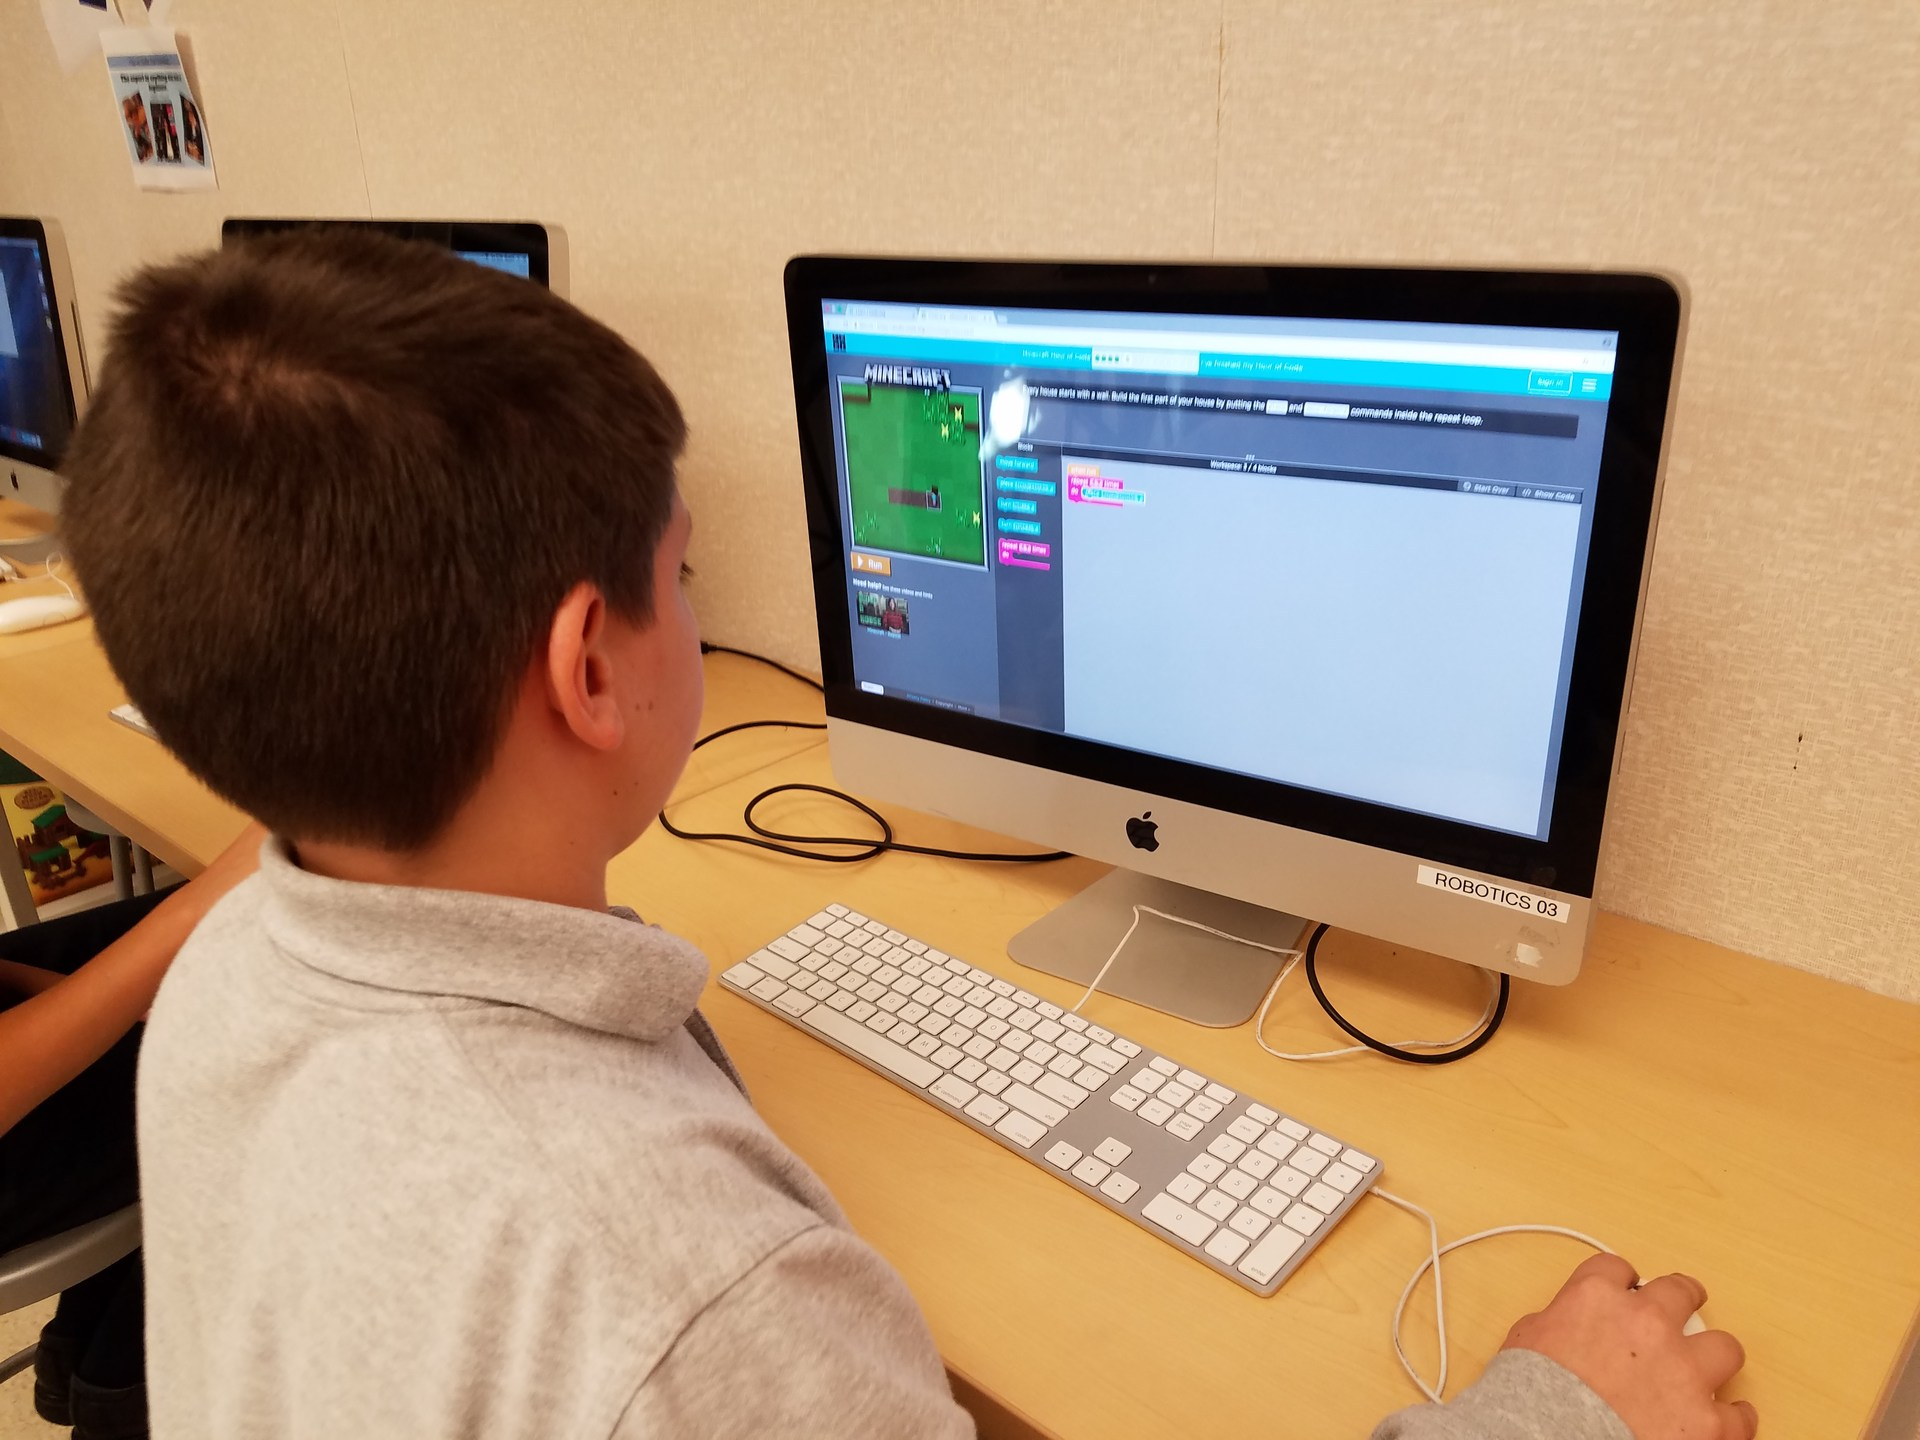 Boy student learning coding